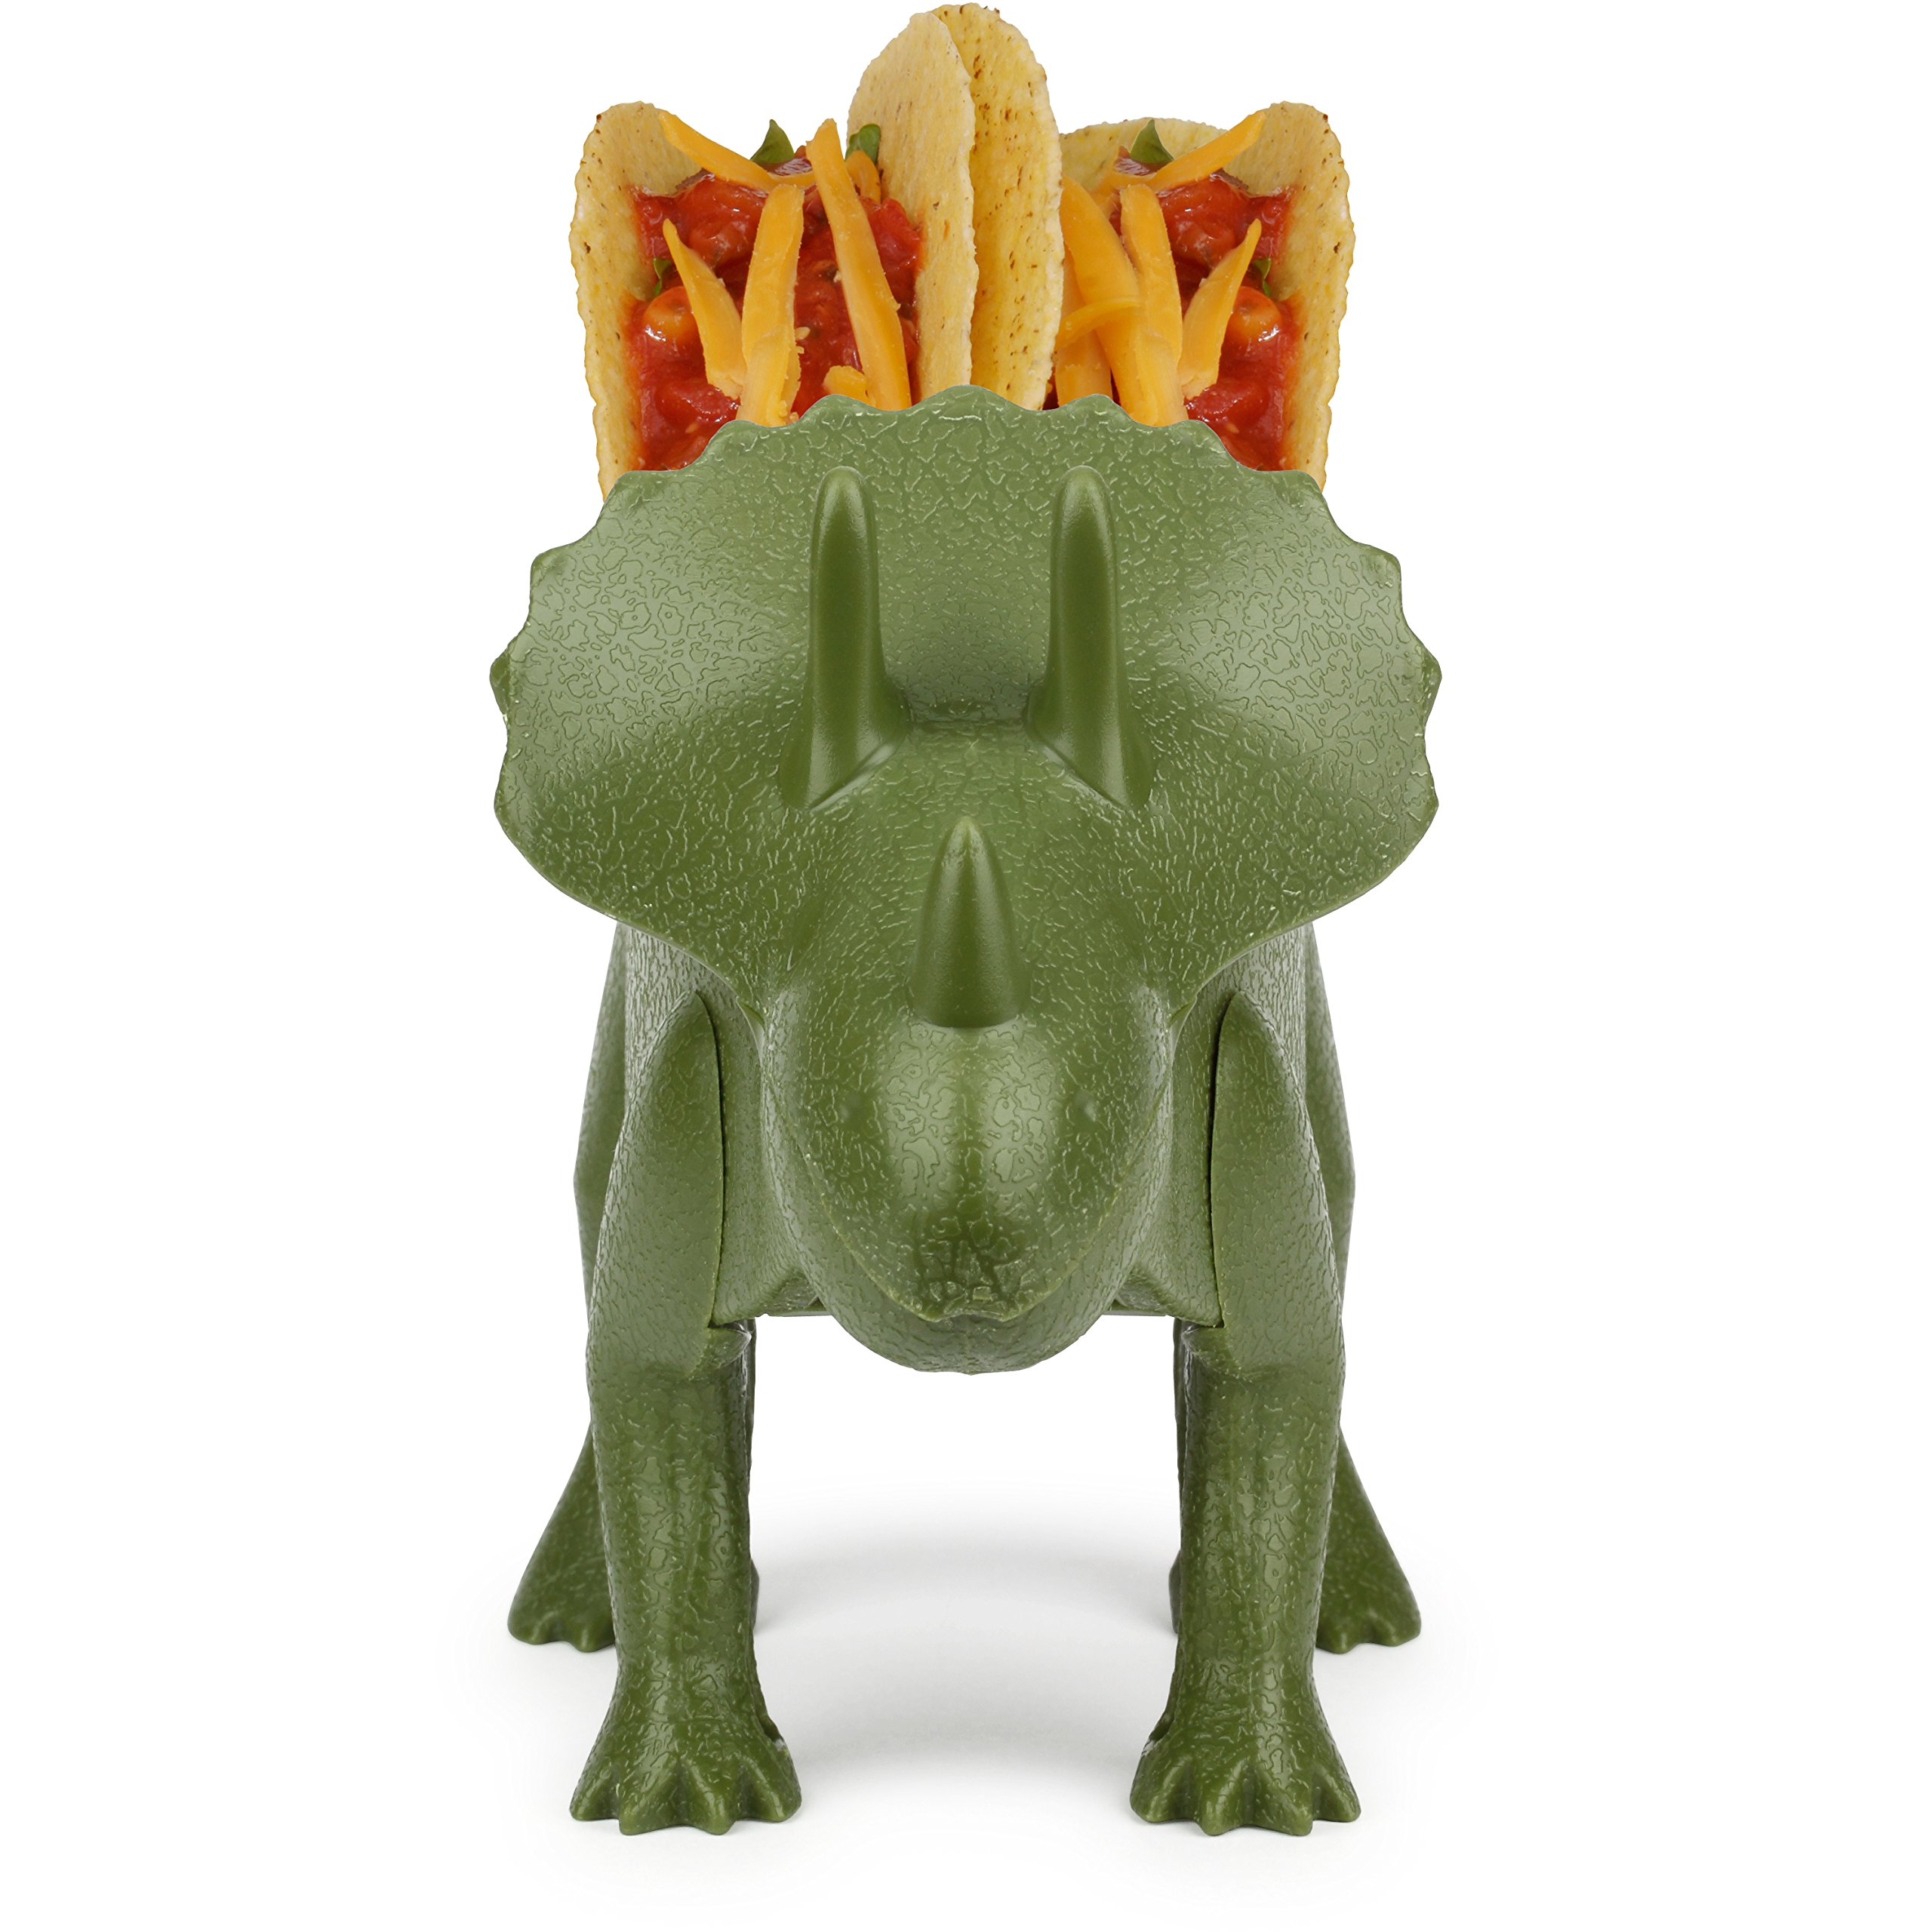 KidsFunwares TriceraTACO Taco Holder - The Ultimate Prehistoric Taco Stand for Jurassic Taco Tuesdays and Dinosaur Parties - Holds 2 Tacos - The Perfect Gift for Kids and Kidults that Love Dinosaurs by KidsFunwares (Image #3)